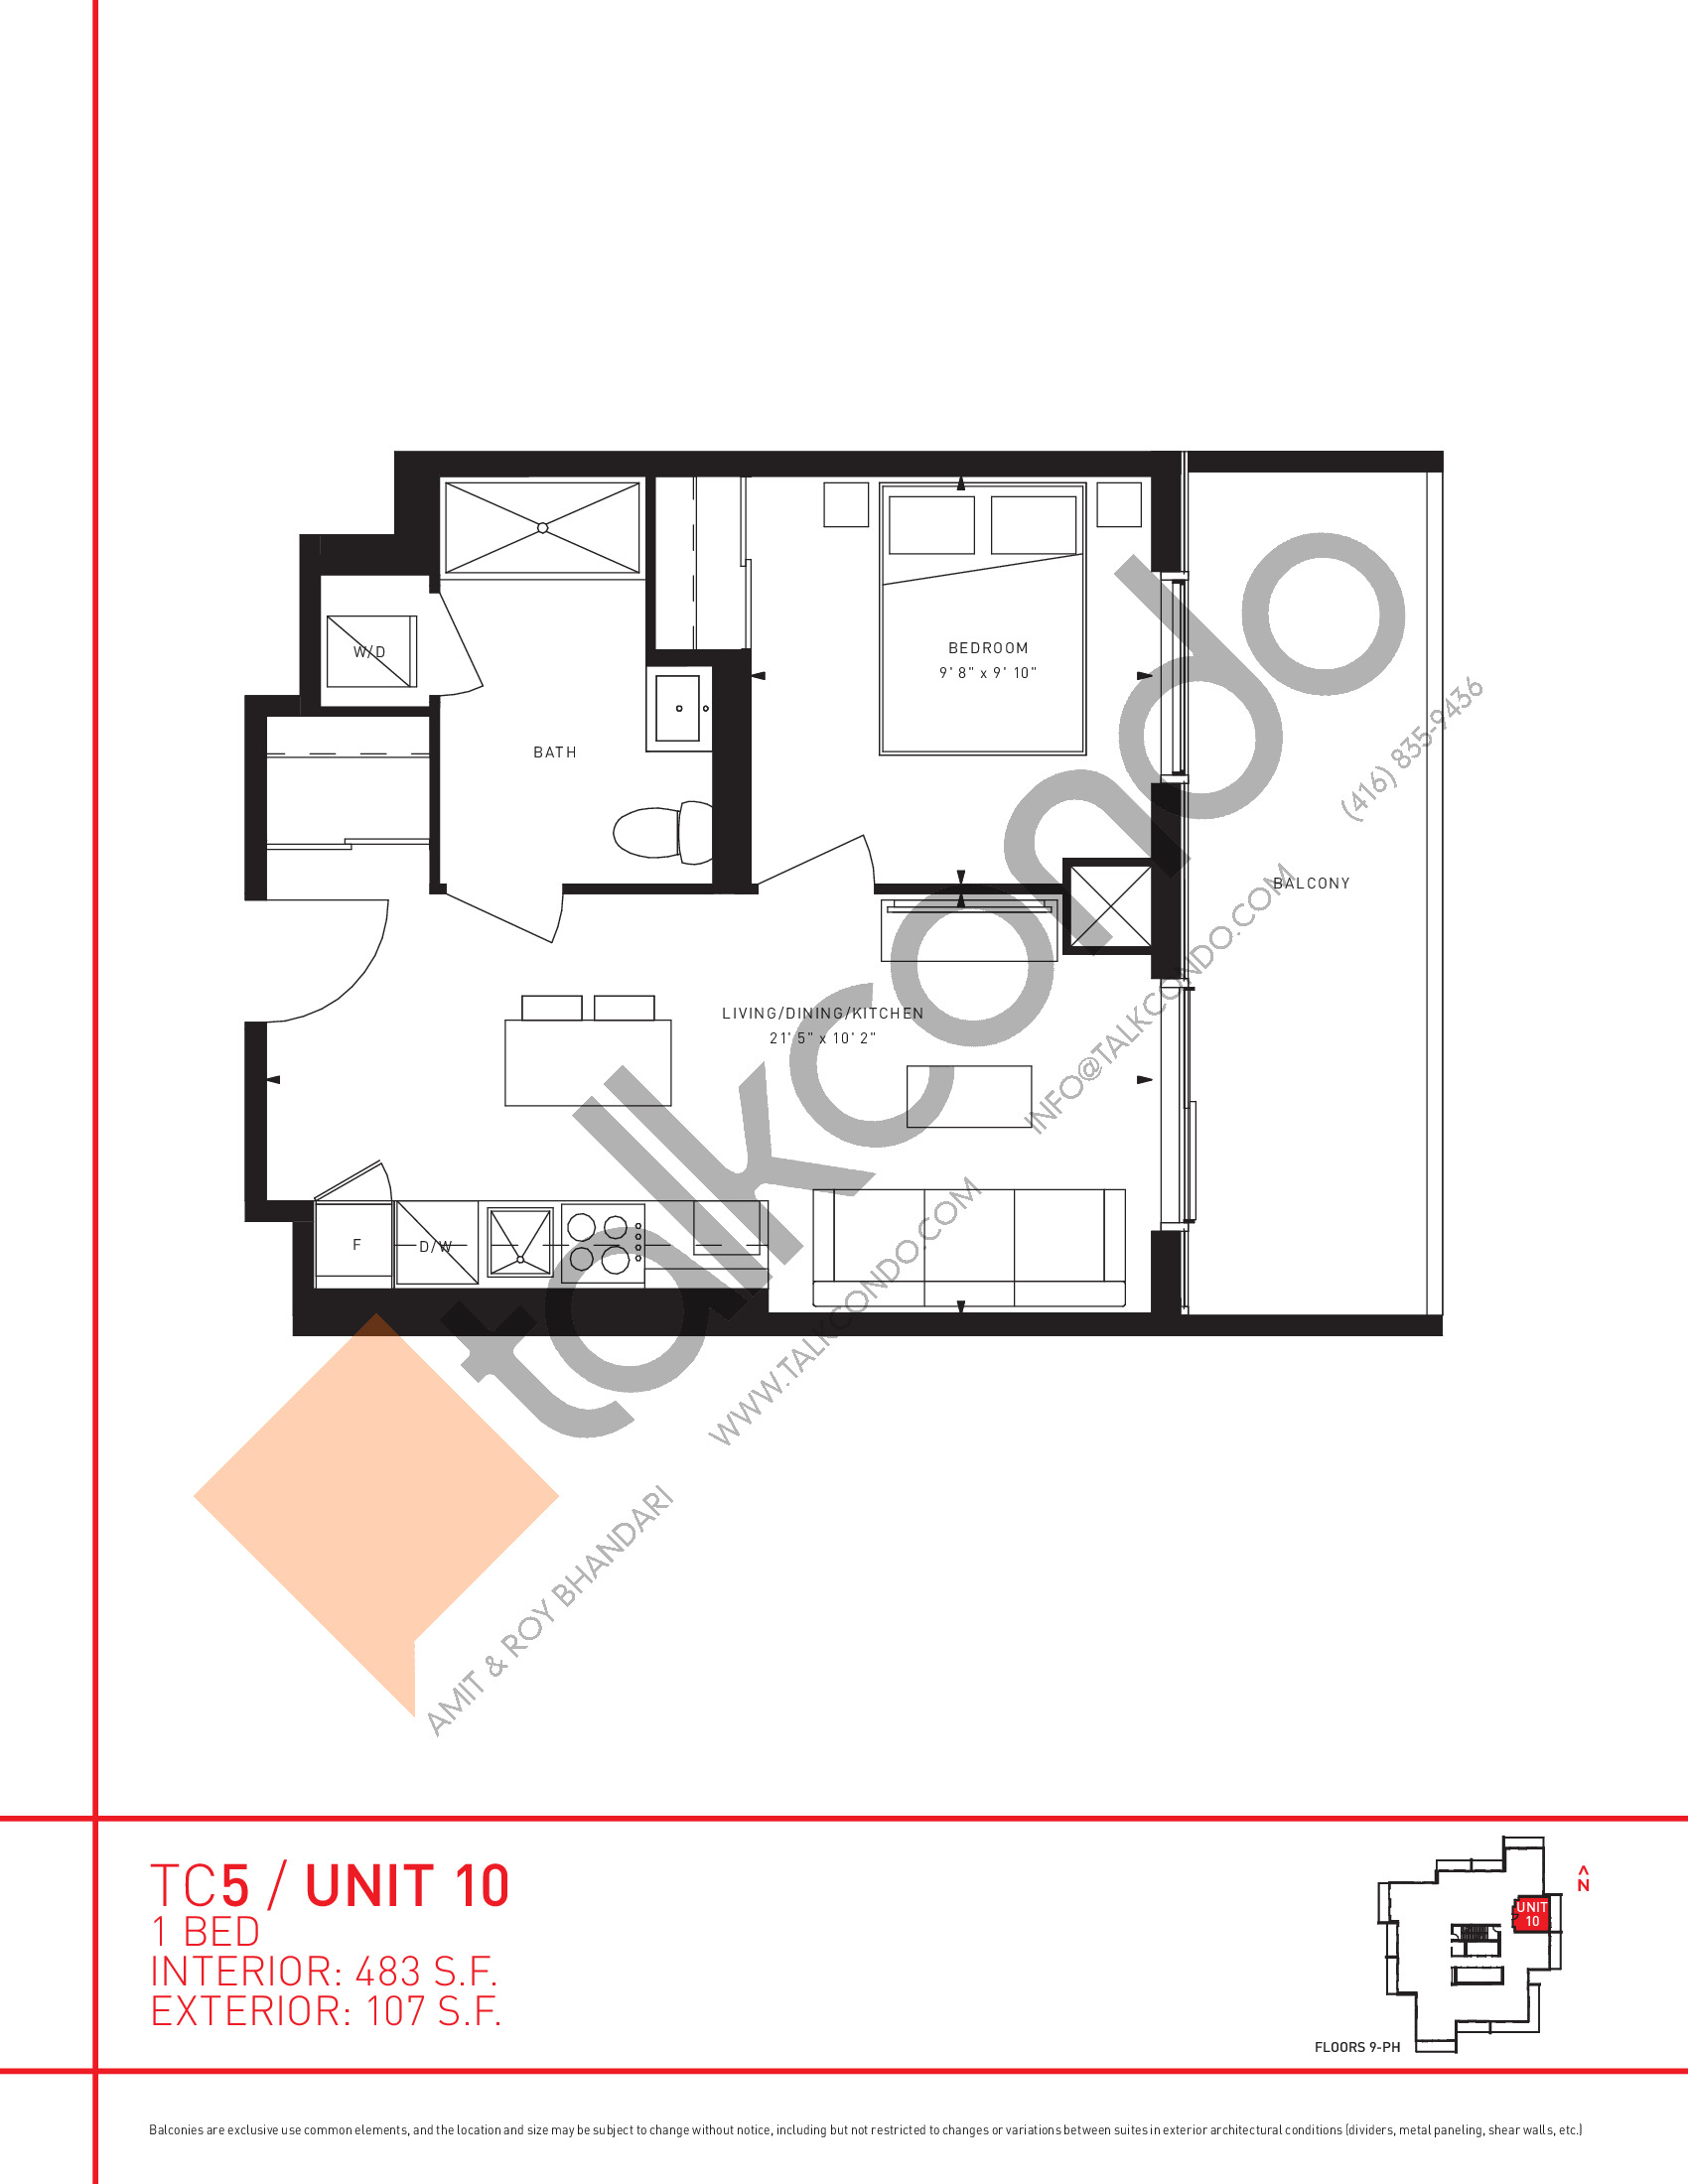 Unit 10 Floor Plan at Transit City 5 (TC5) Condos - 483 sq.ft